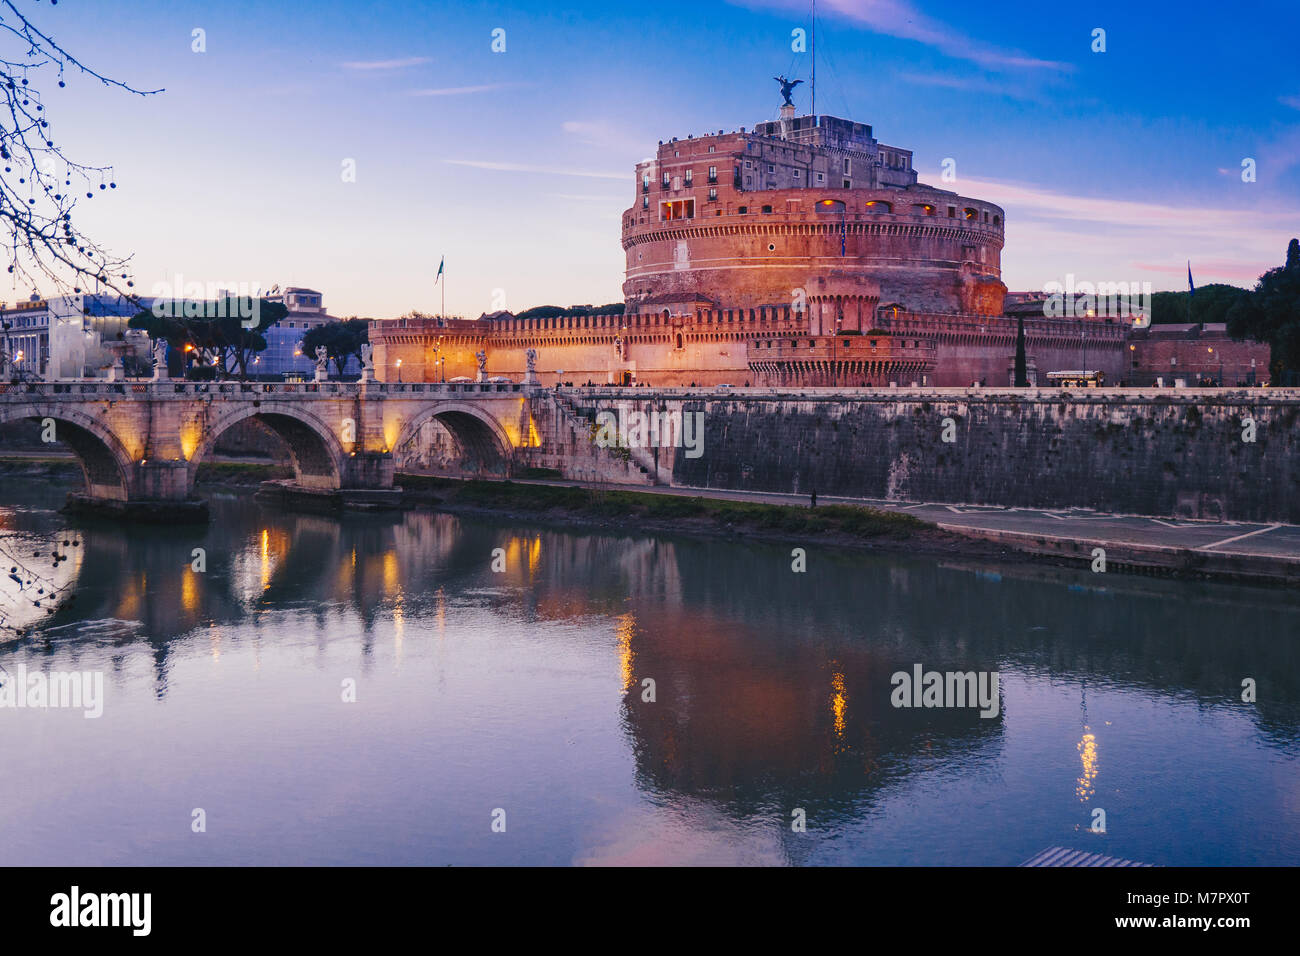 Night view of Sant' Angelo Castle and Sant' Angelo Bridge in Rome, Italy - Stock Image